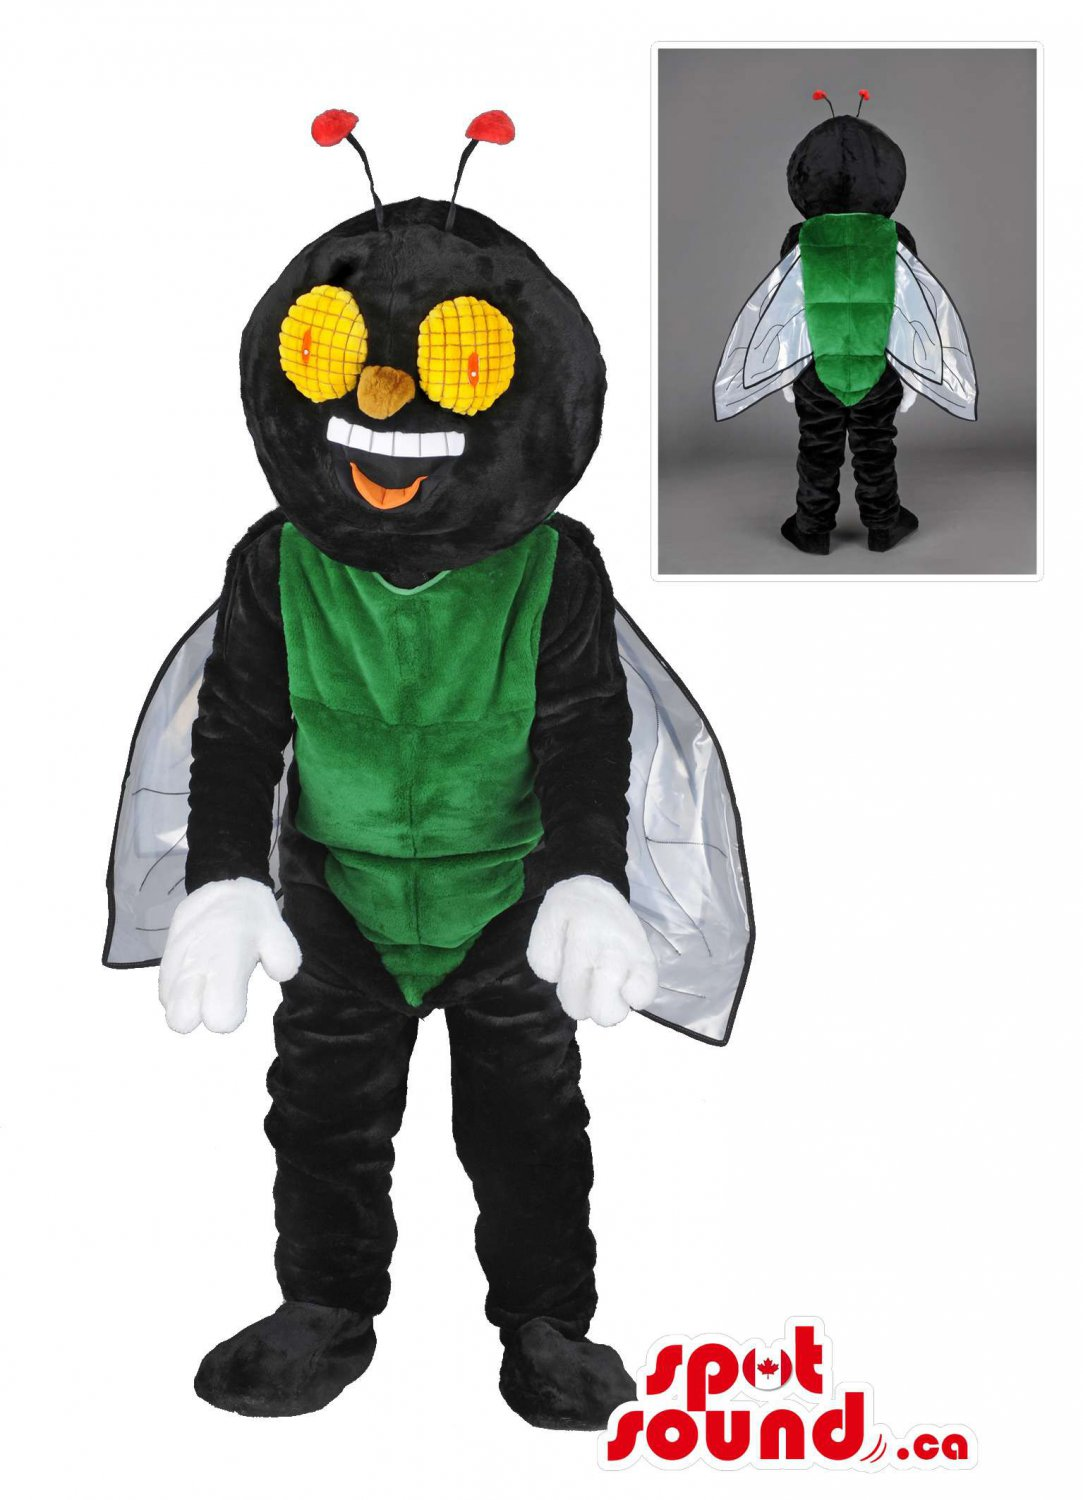 Black And Green Fly Mascot SpotSound Canada With Wings And Large Yellow Eyes